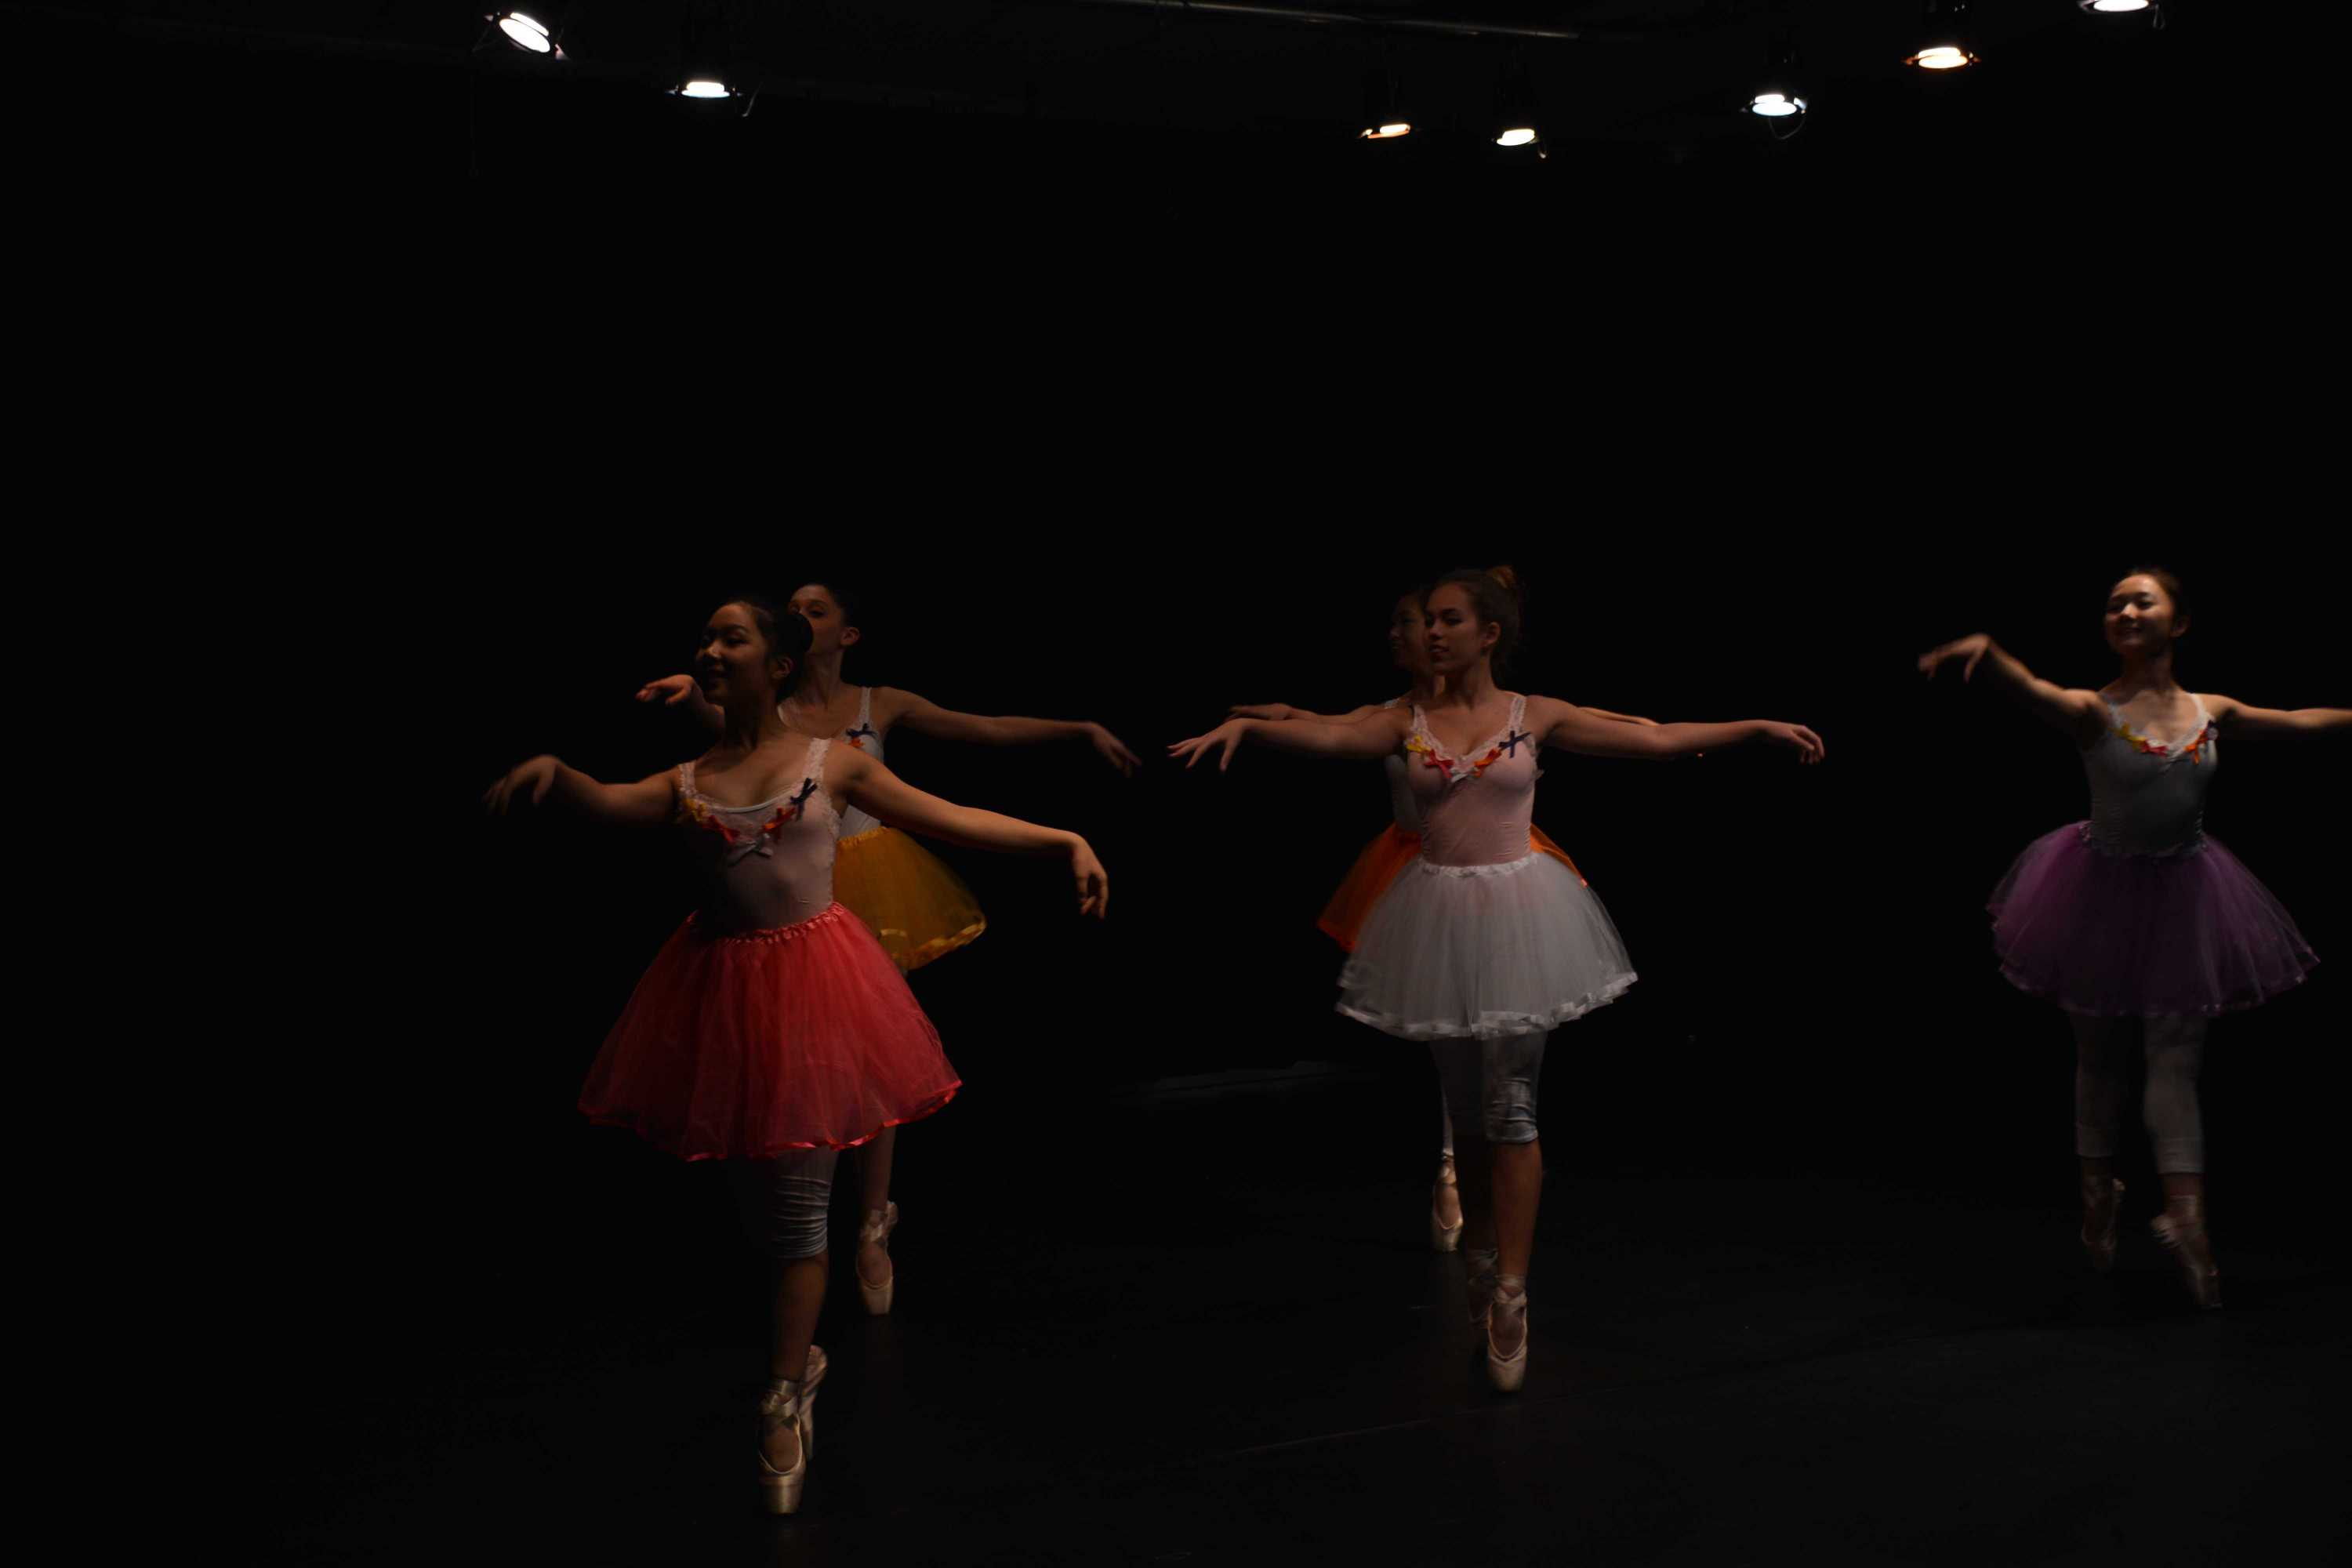 Dancers Emory Kim '18 and Anneliese Breidsprecher '18 perform for the Arc Foundation during their performance. Credit: Ellis Becker/Chronicle